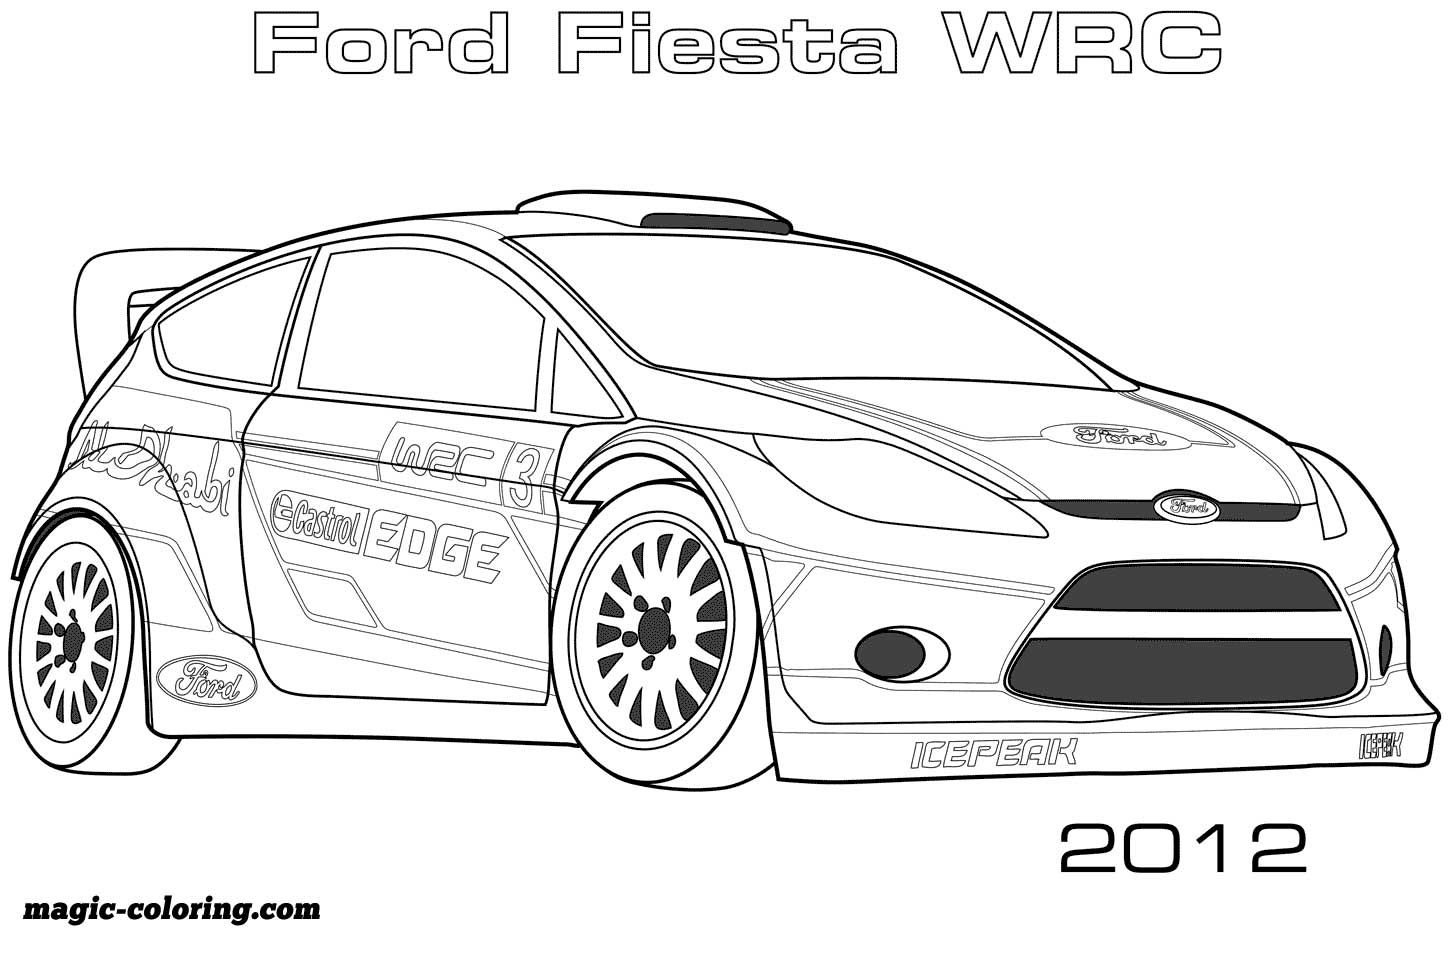 2012 Ford Fiesta Wrc Coloring Page Race Car Coloring Pages Cars Coloring Pages Coloring Pages